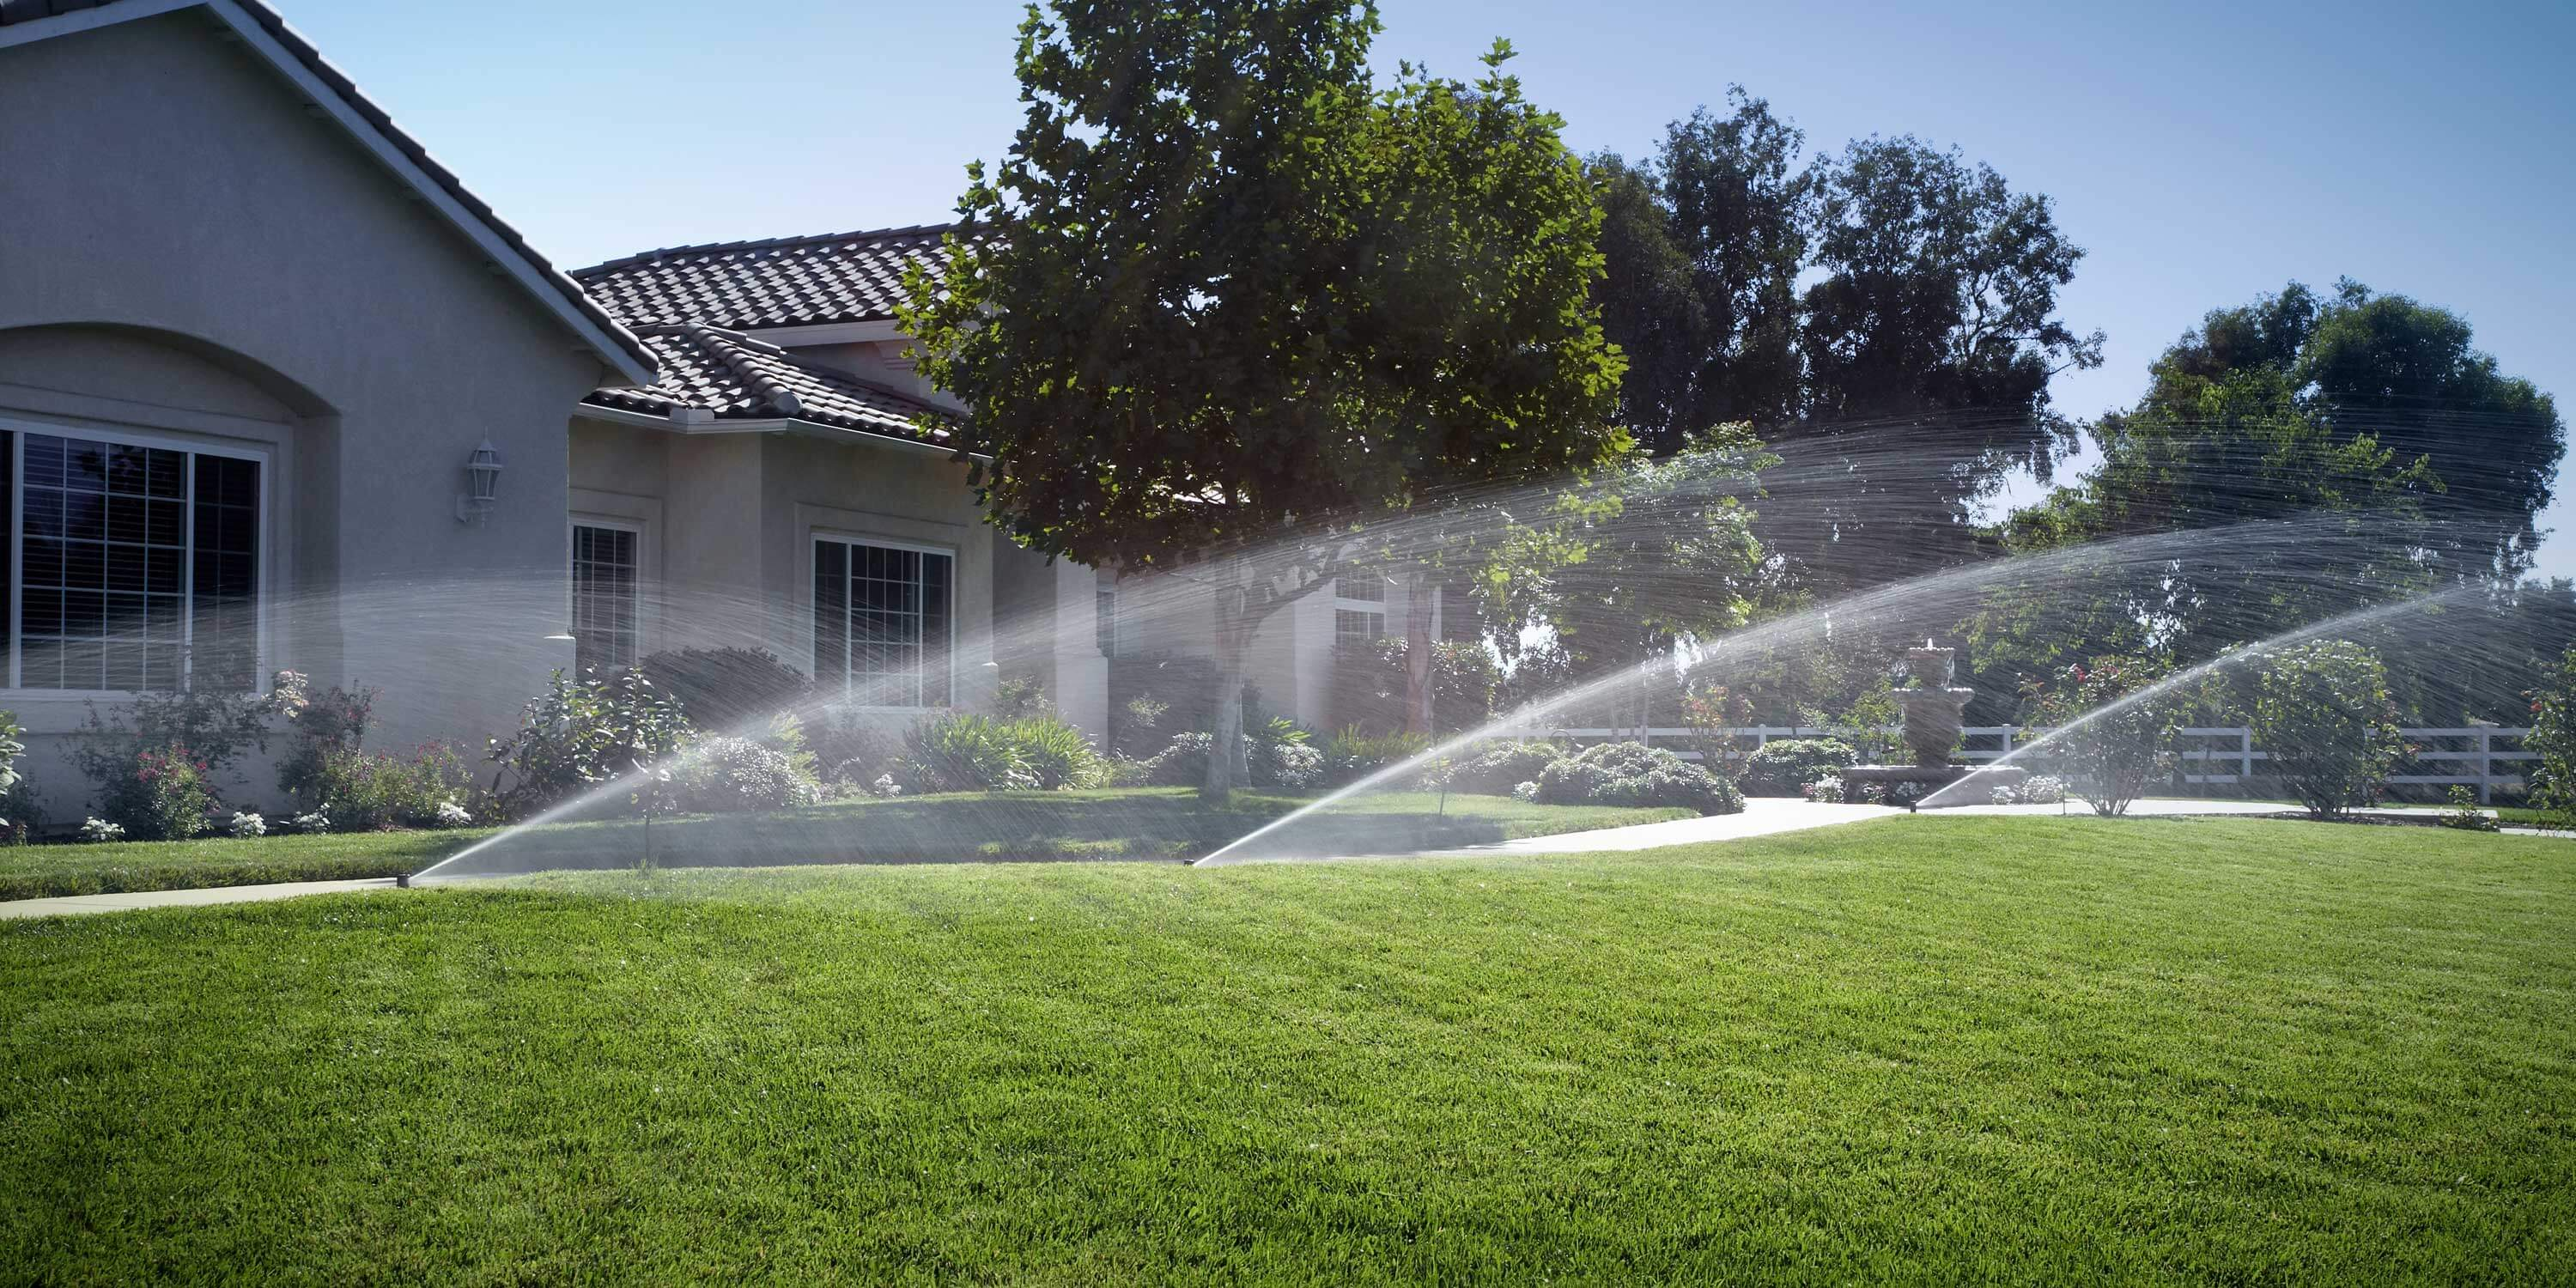 sprinklers in front of a house